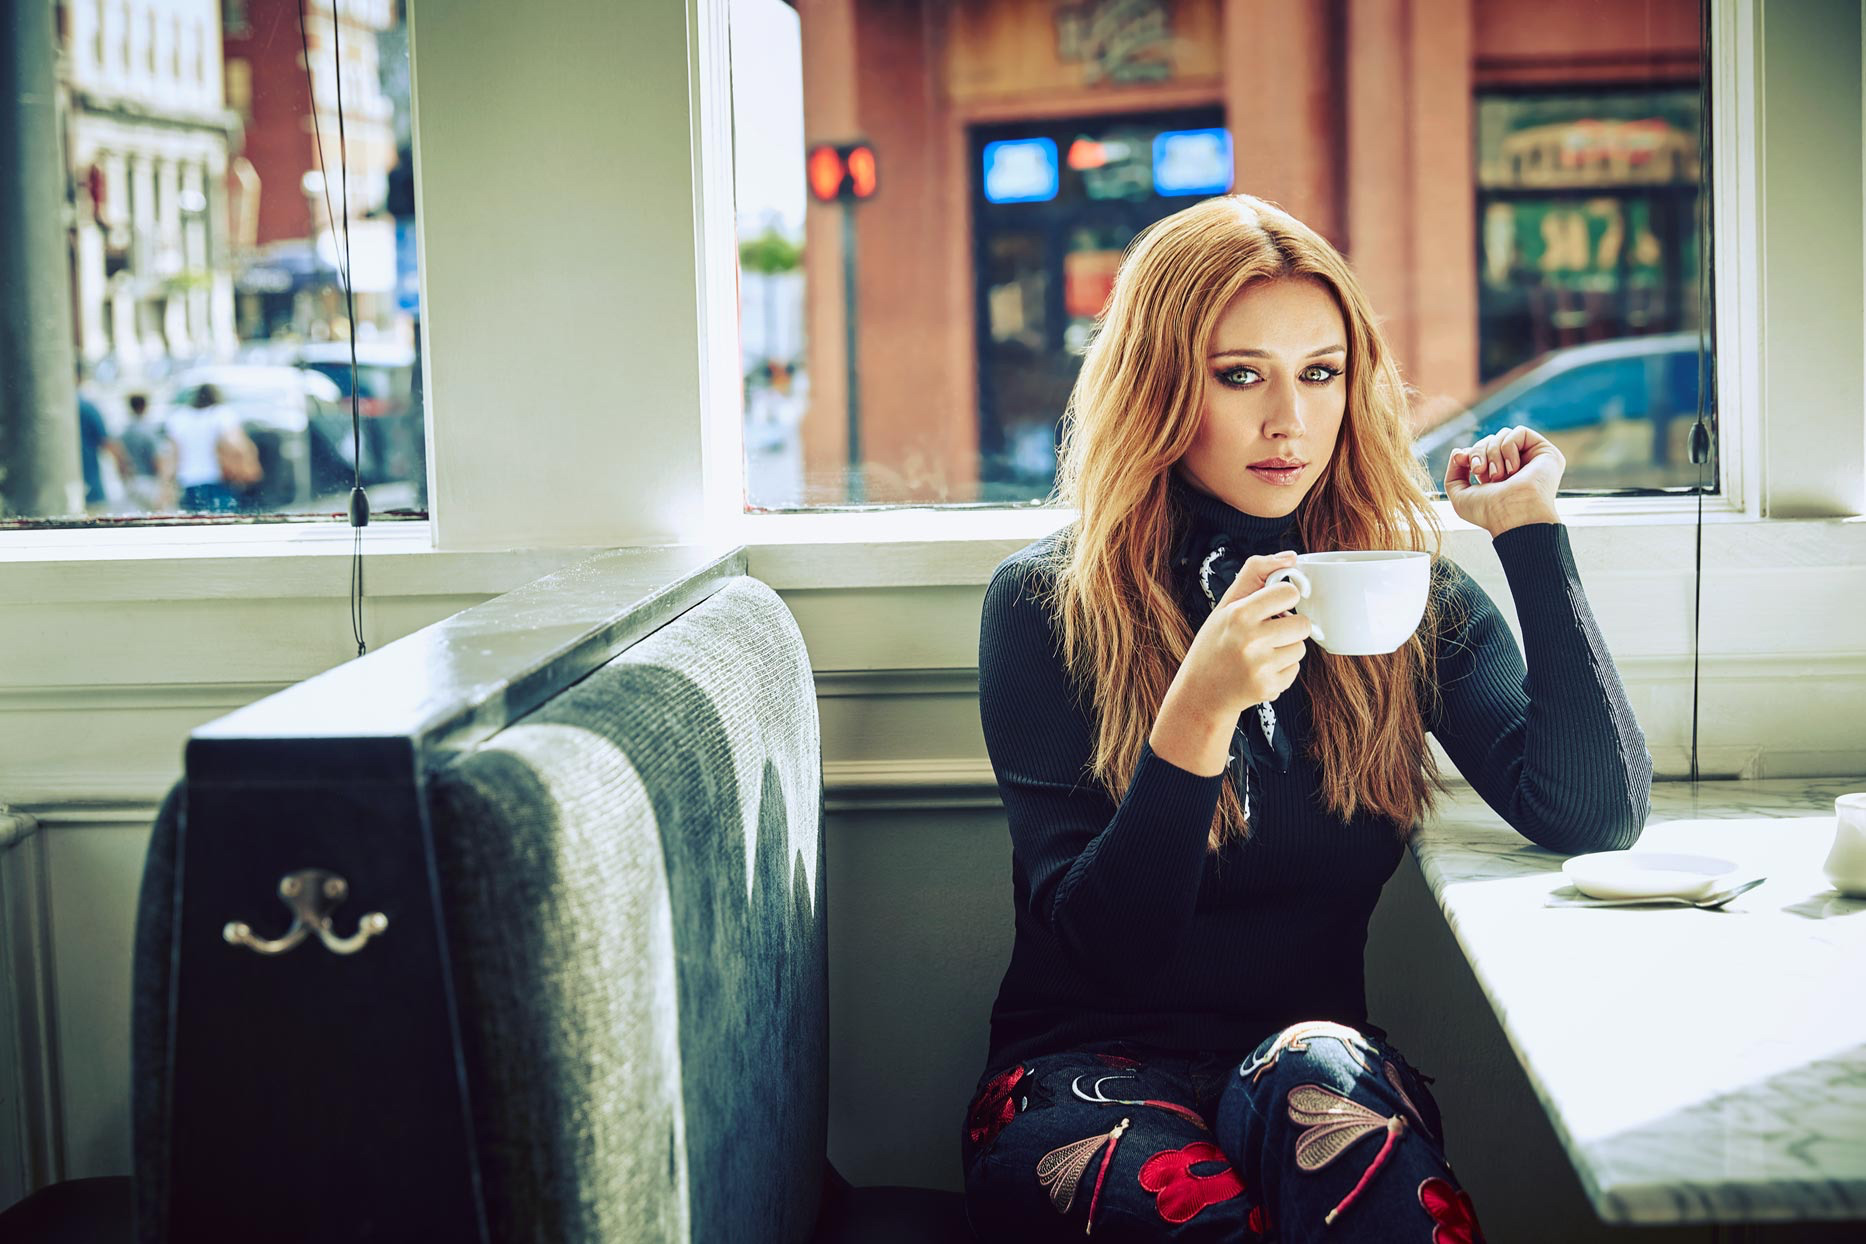 Mark DeLong - Celebrity Photographer - Actress in a diner getting ready to sip coffee.